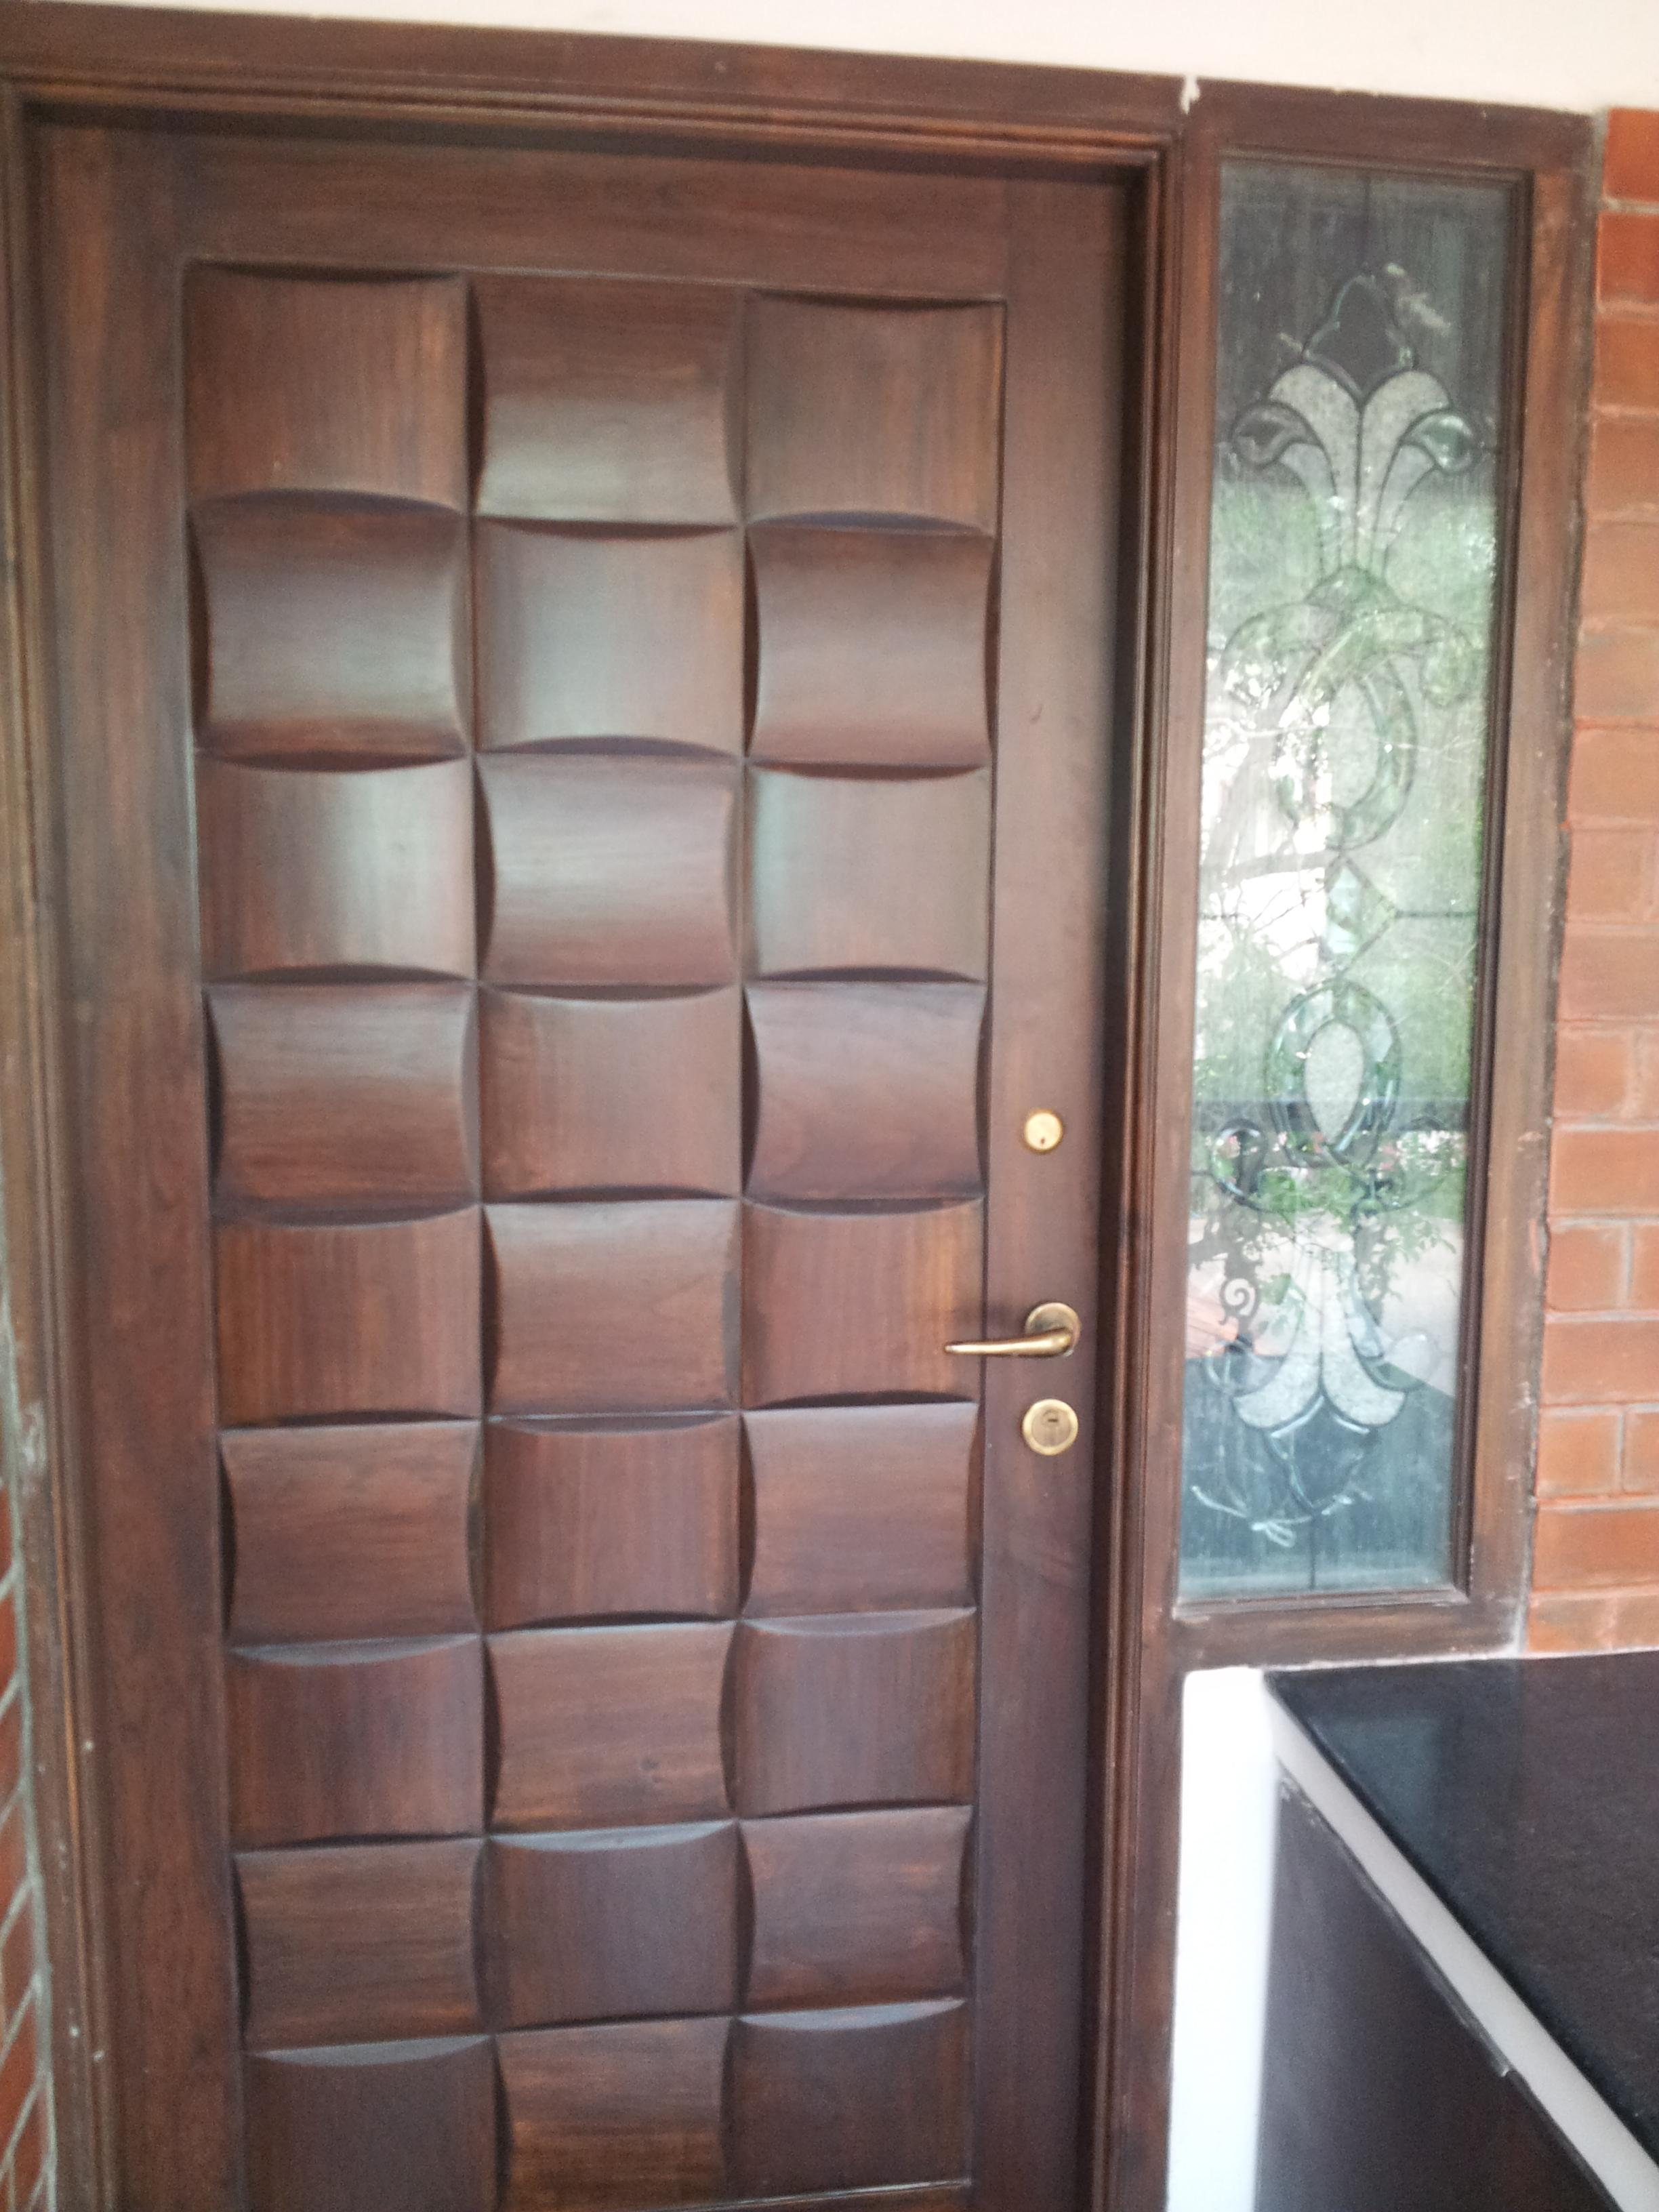 The main door is a Teak Paneled Door which gives the look of a weaved    Indian Modern Main Door Design